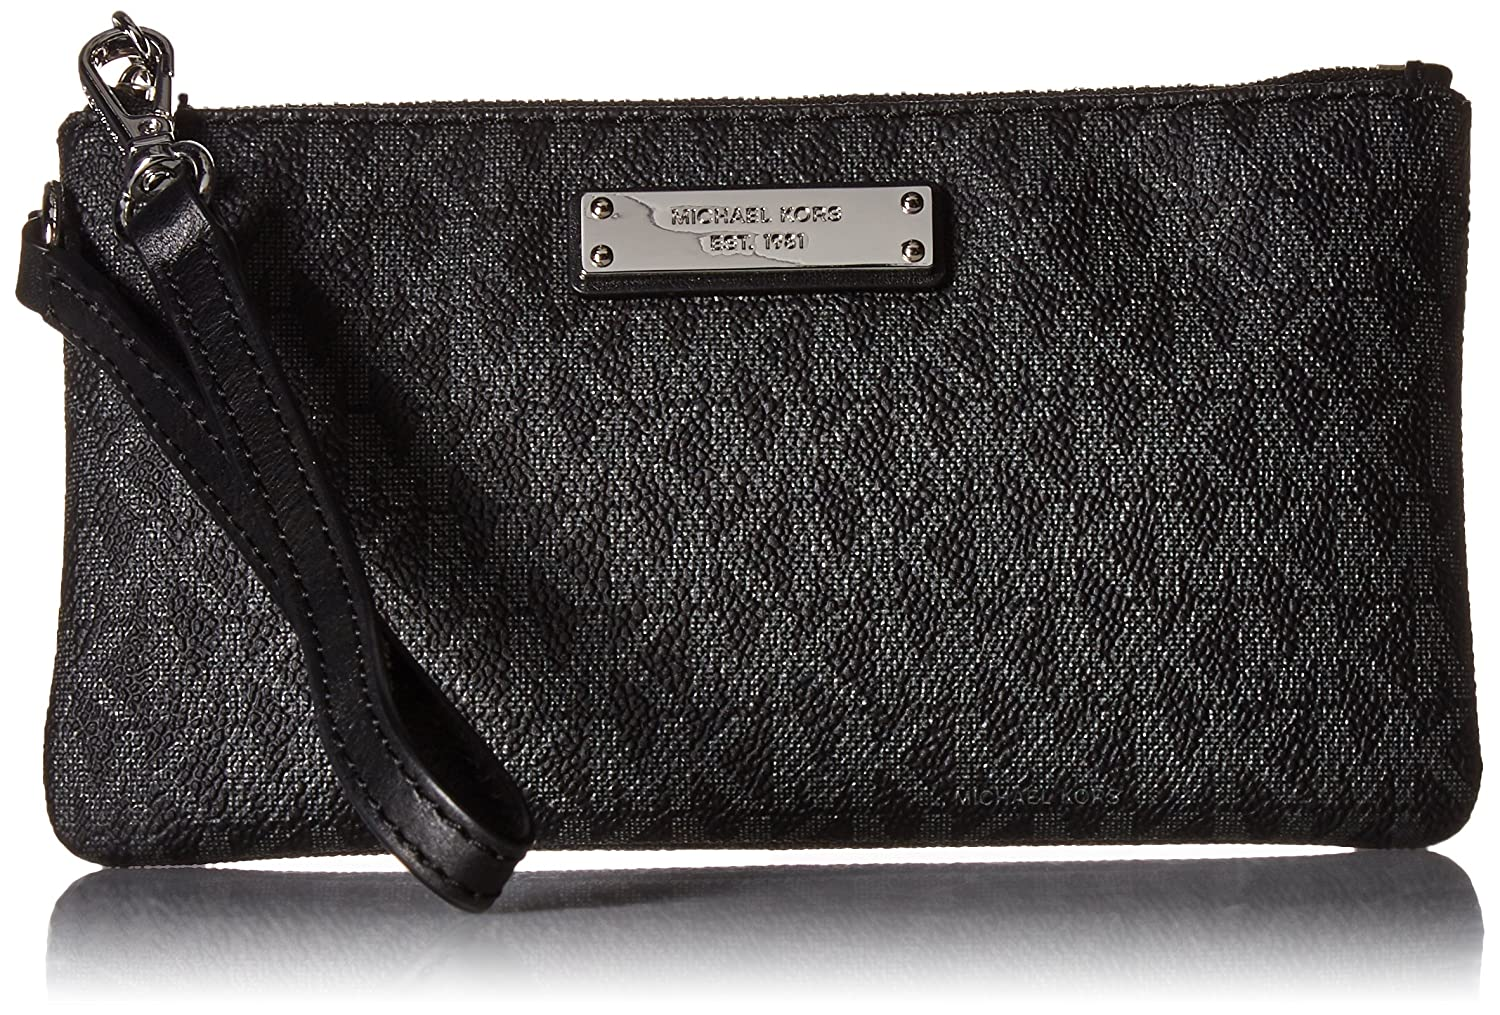 cba8c1ae59937a Michael Kors Jet Set Signature Travel Wristlet, Black: Handbags: Amazon.com